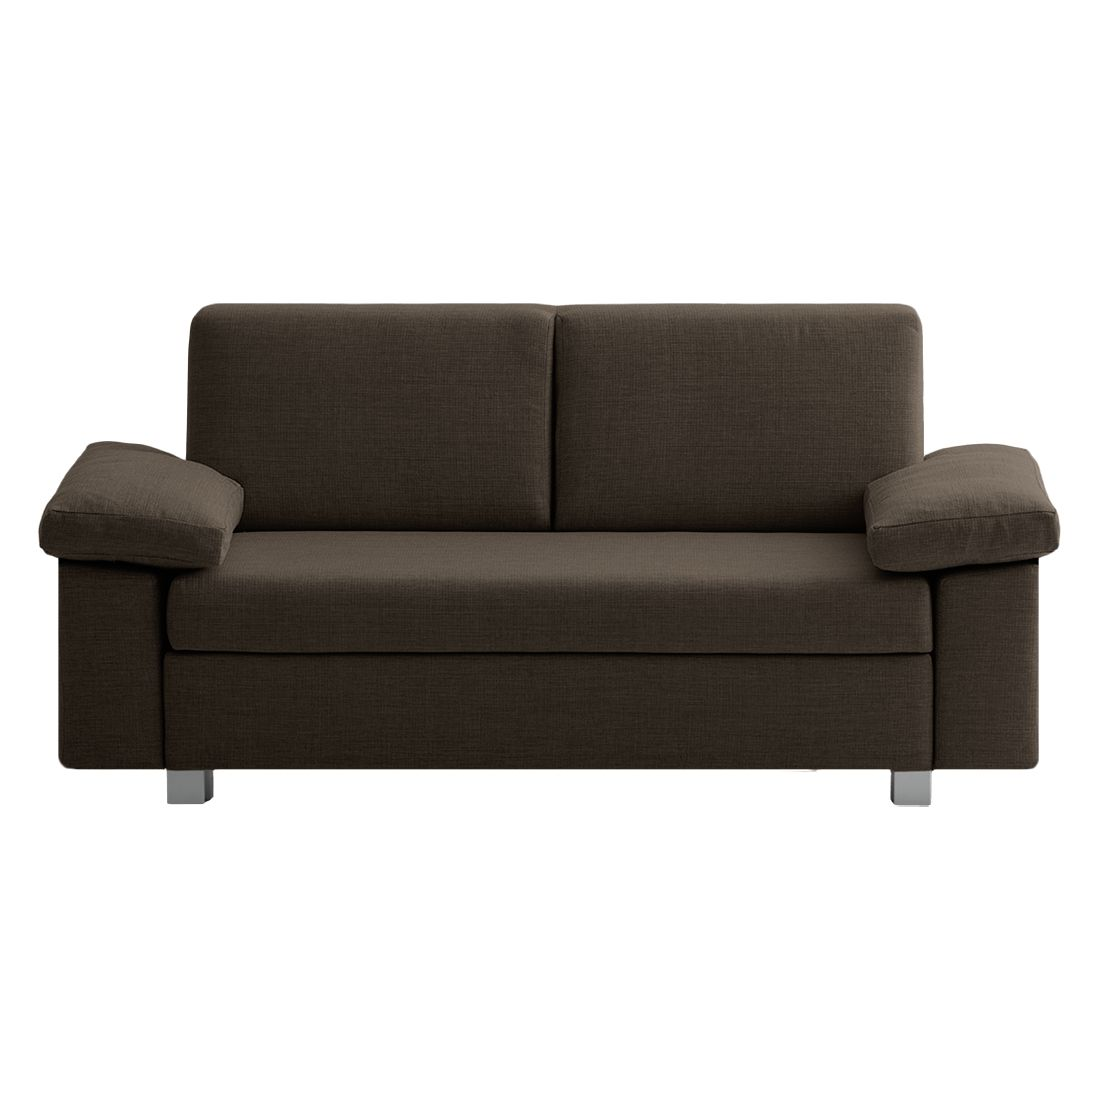 Bettsofa Home24 Schlafsofas Braun